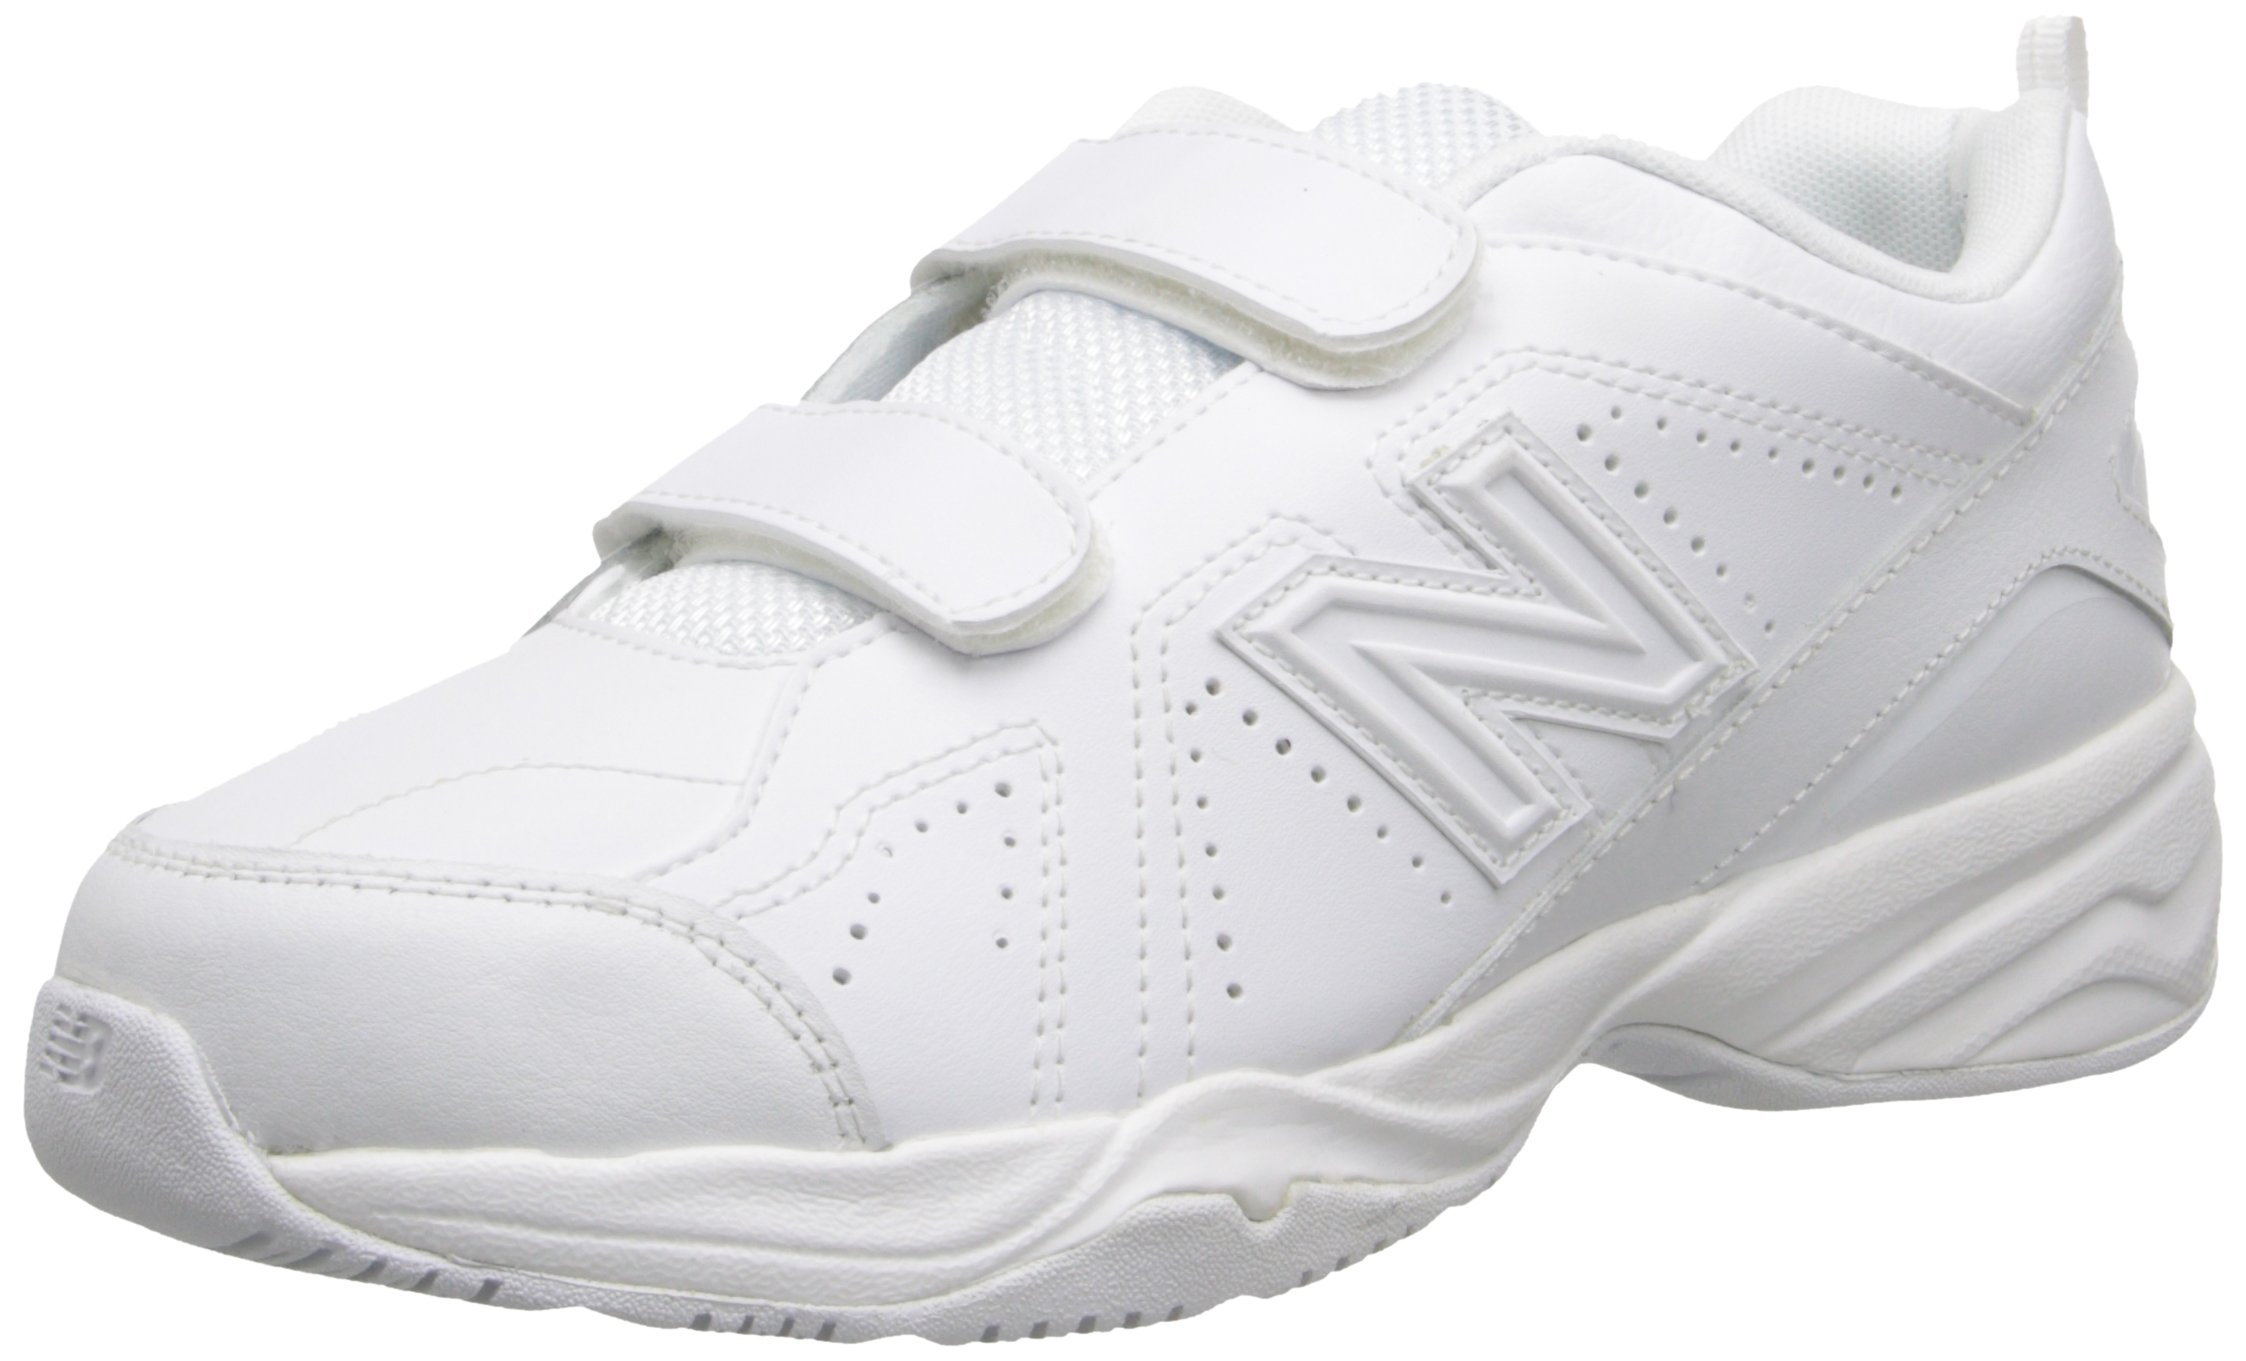 New Balance Boys' KV624 Hook and Loop Training Shoe, White, 12.5 M US Little Kid